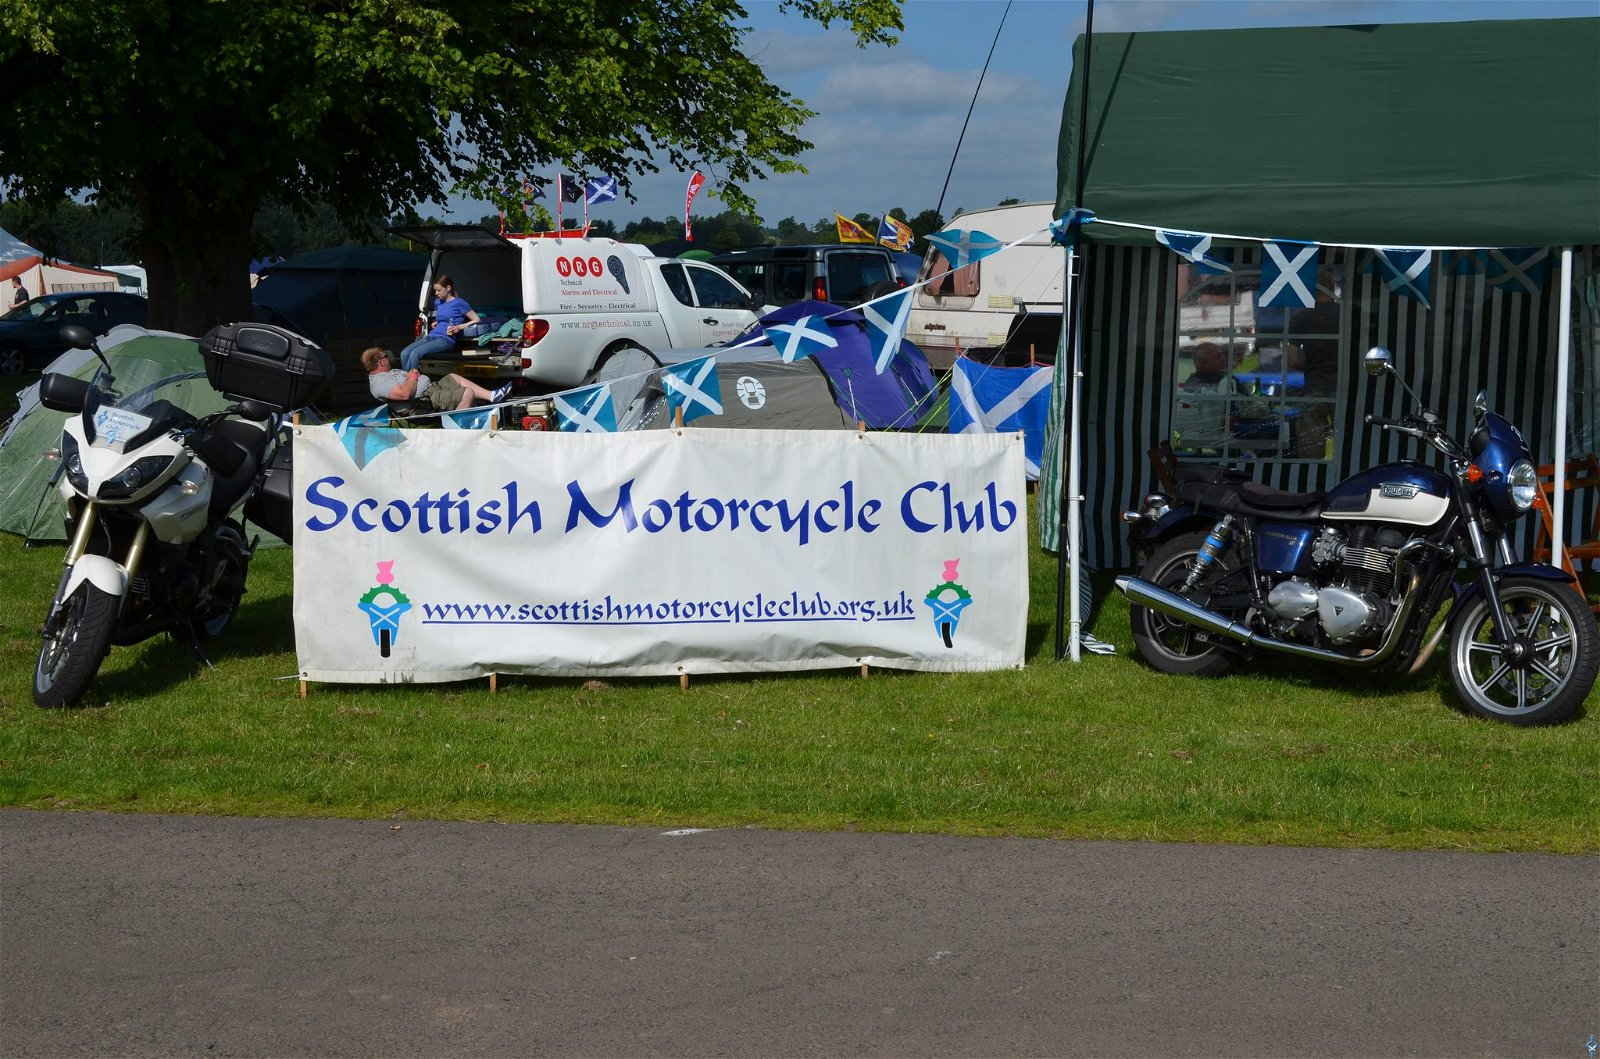 Scottish Motorcycle Club credit Facebook page